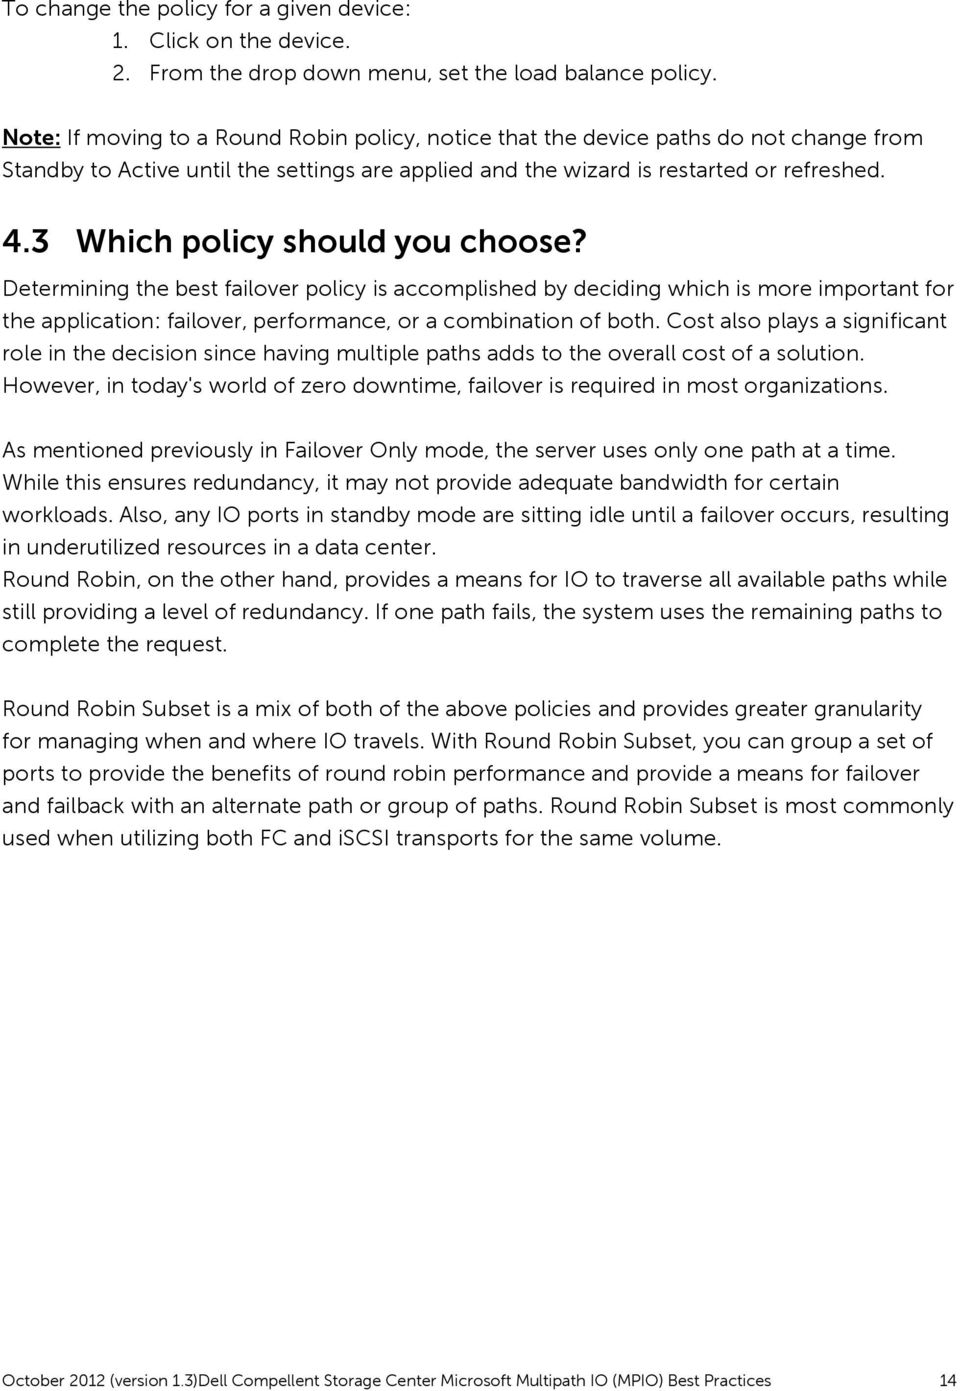 3 Which policy should you choose? Determining the best failover policy is accomplished by deciding which is more important for the application: failover, performance, or a combination of both.